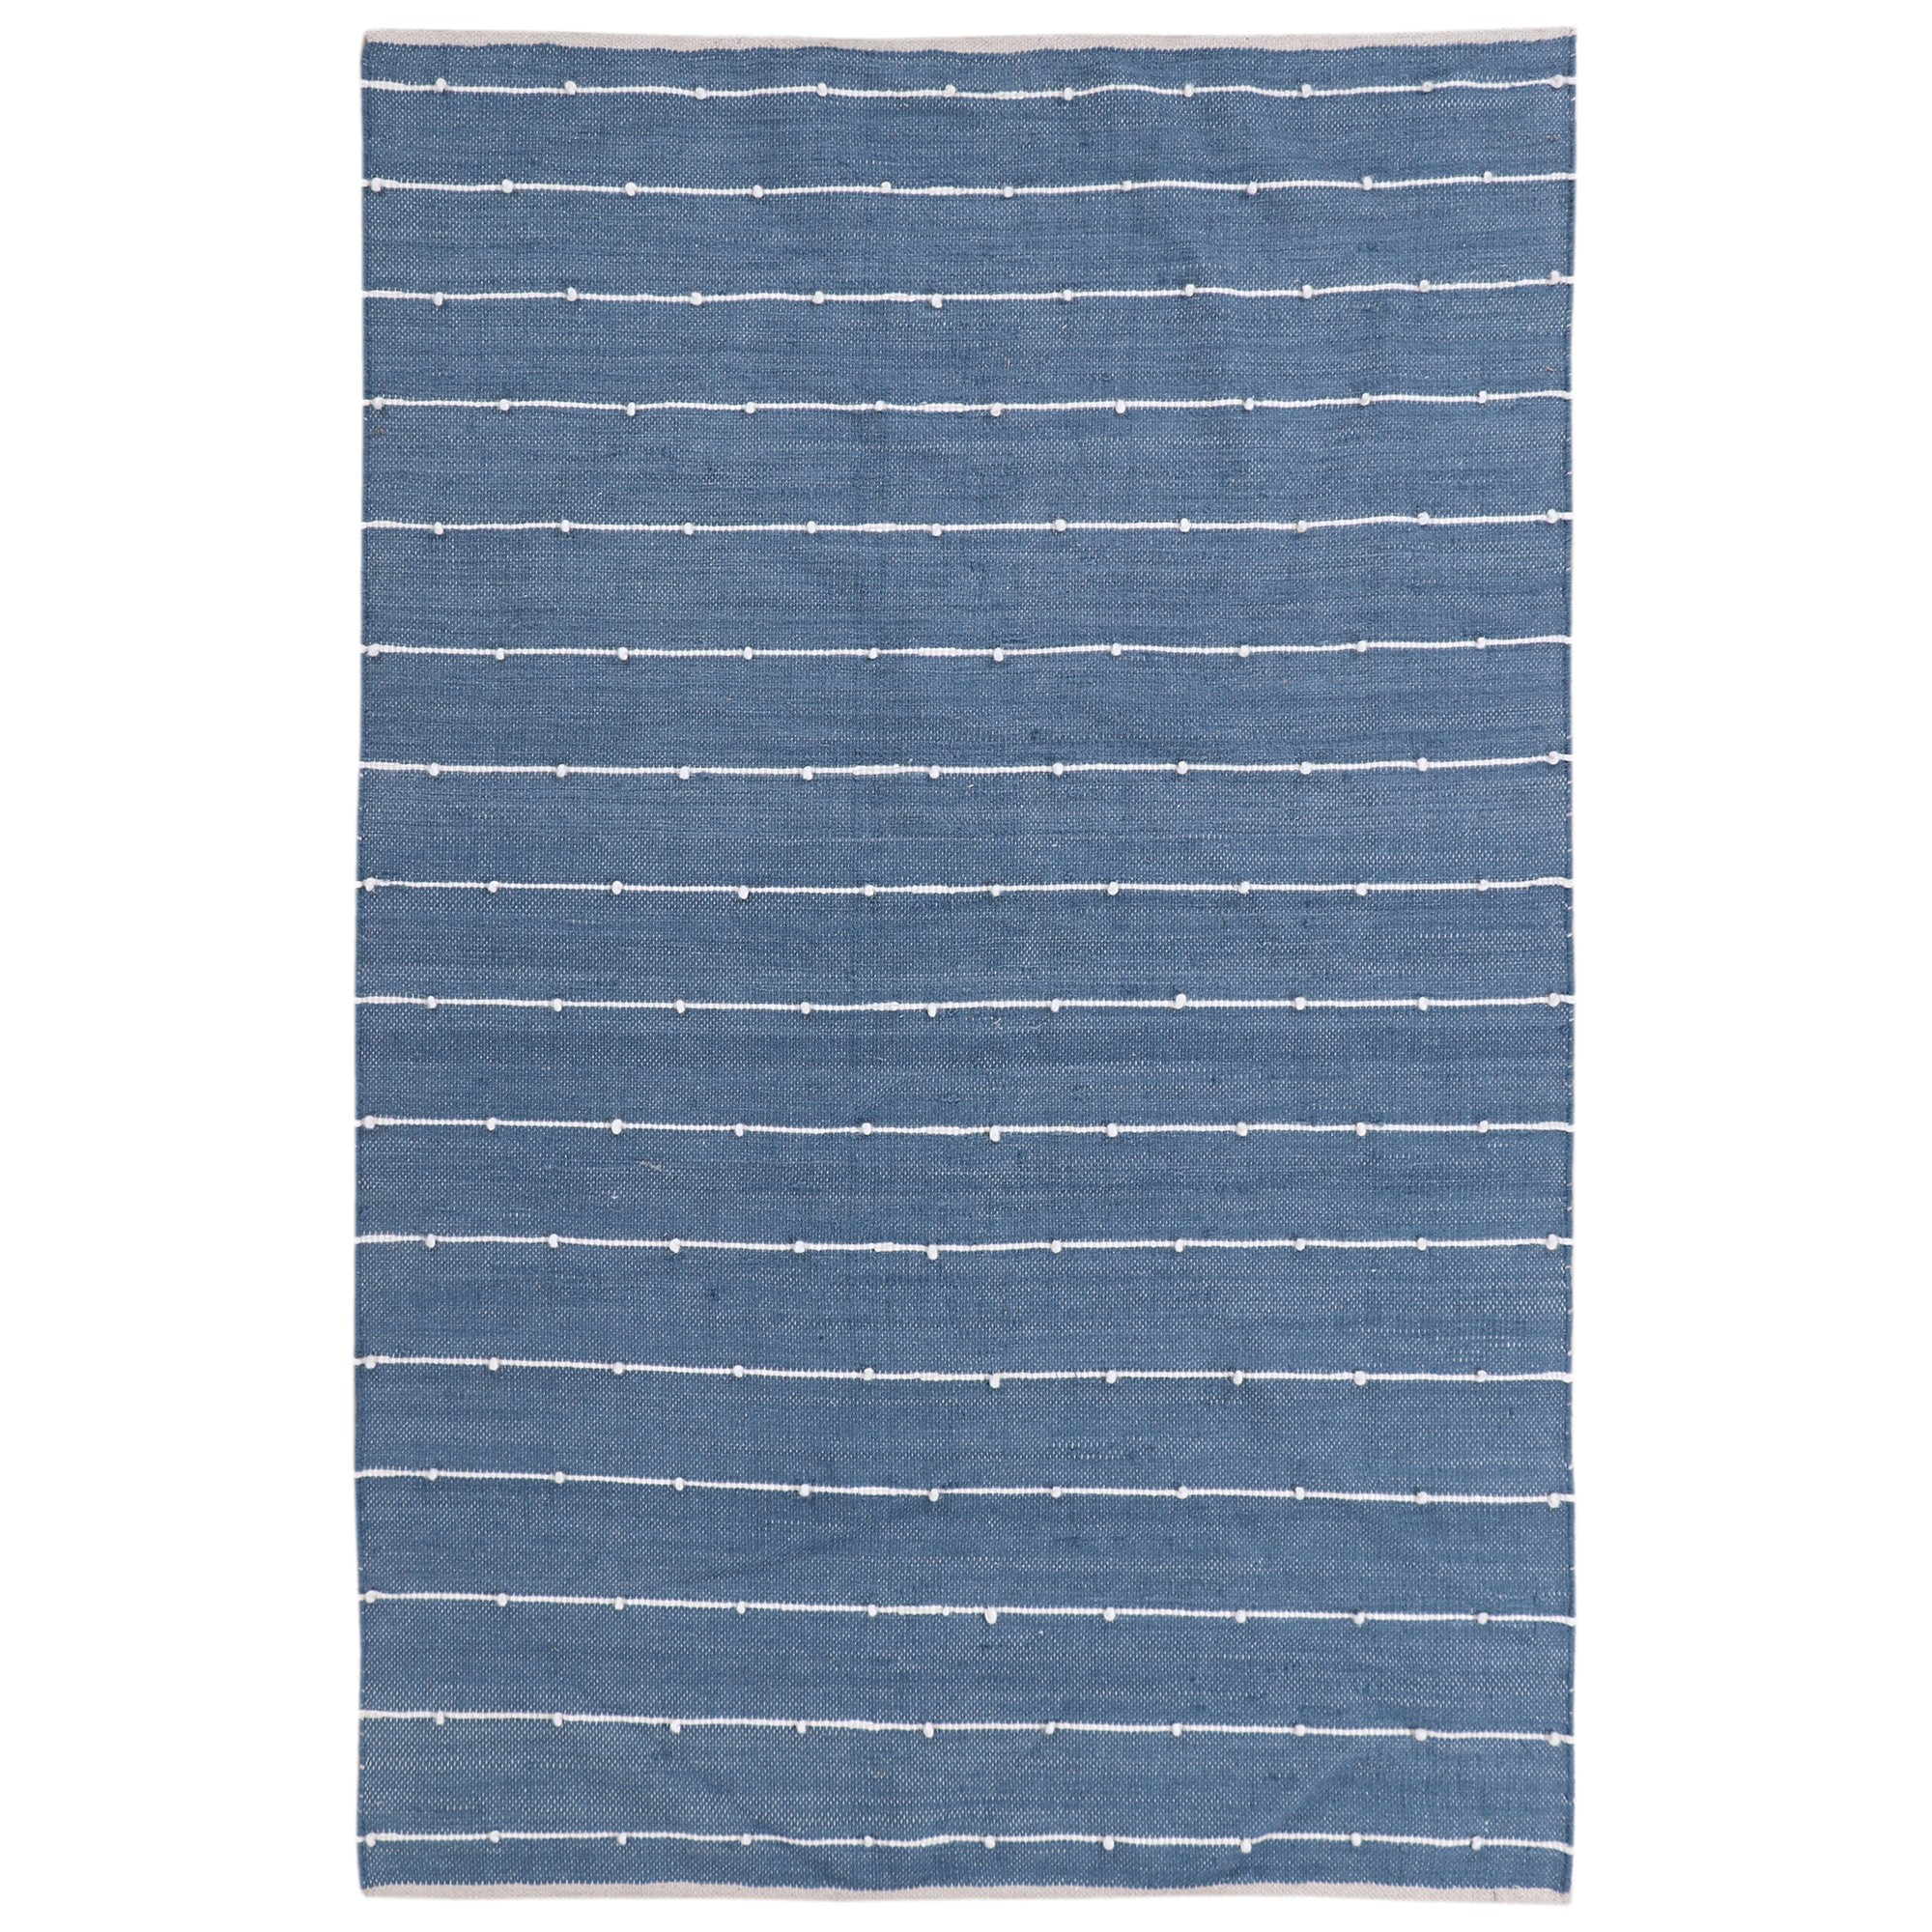 Ambience Hand Woven Wool Rug, 230x160cm